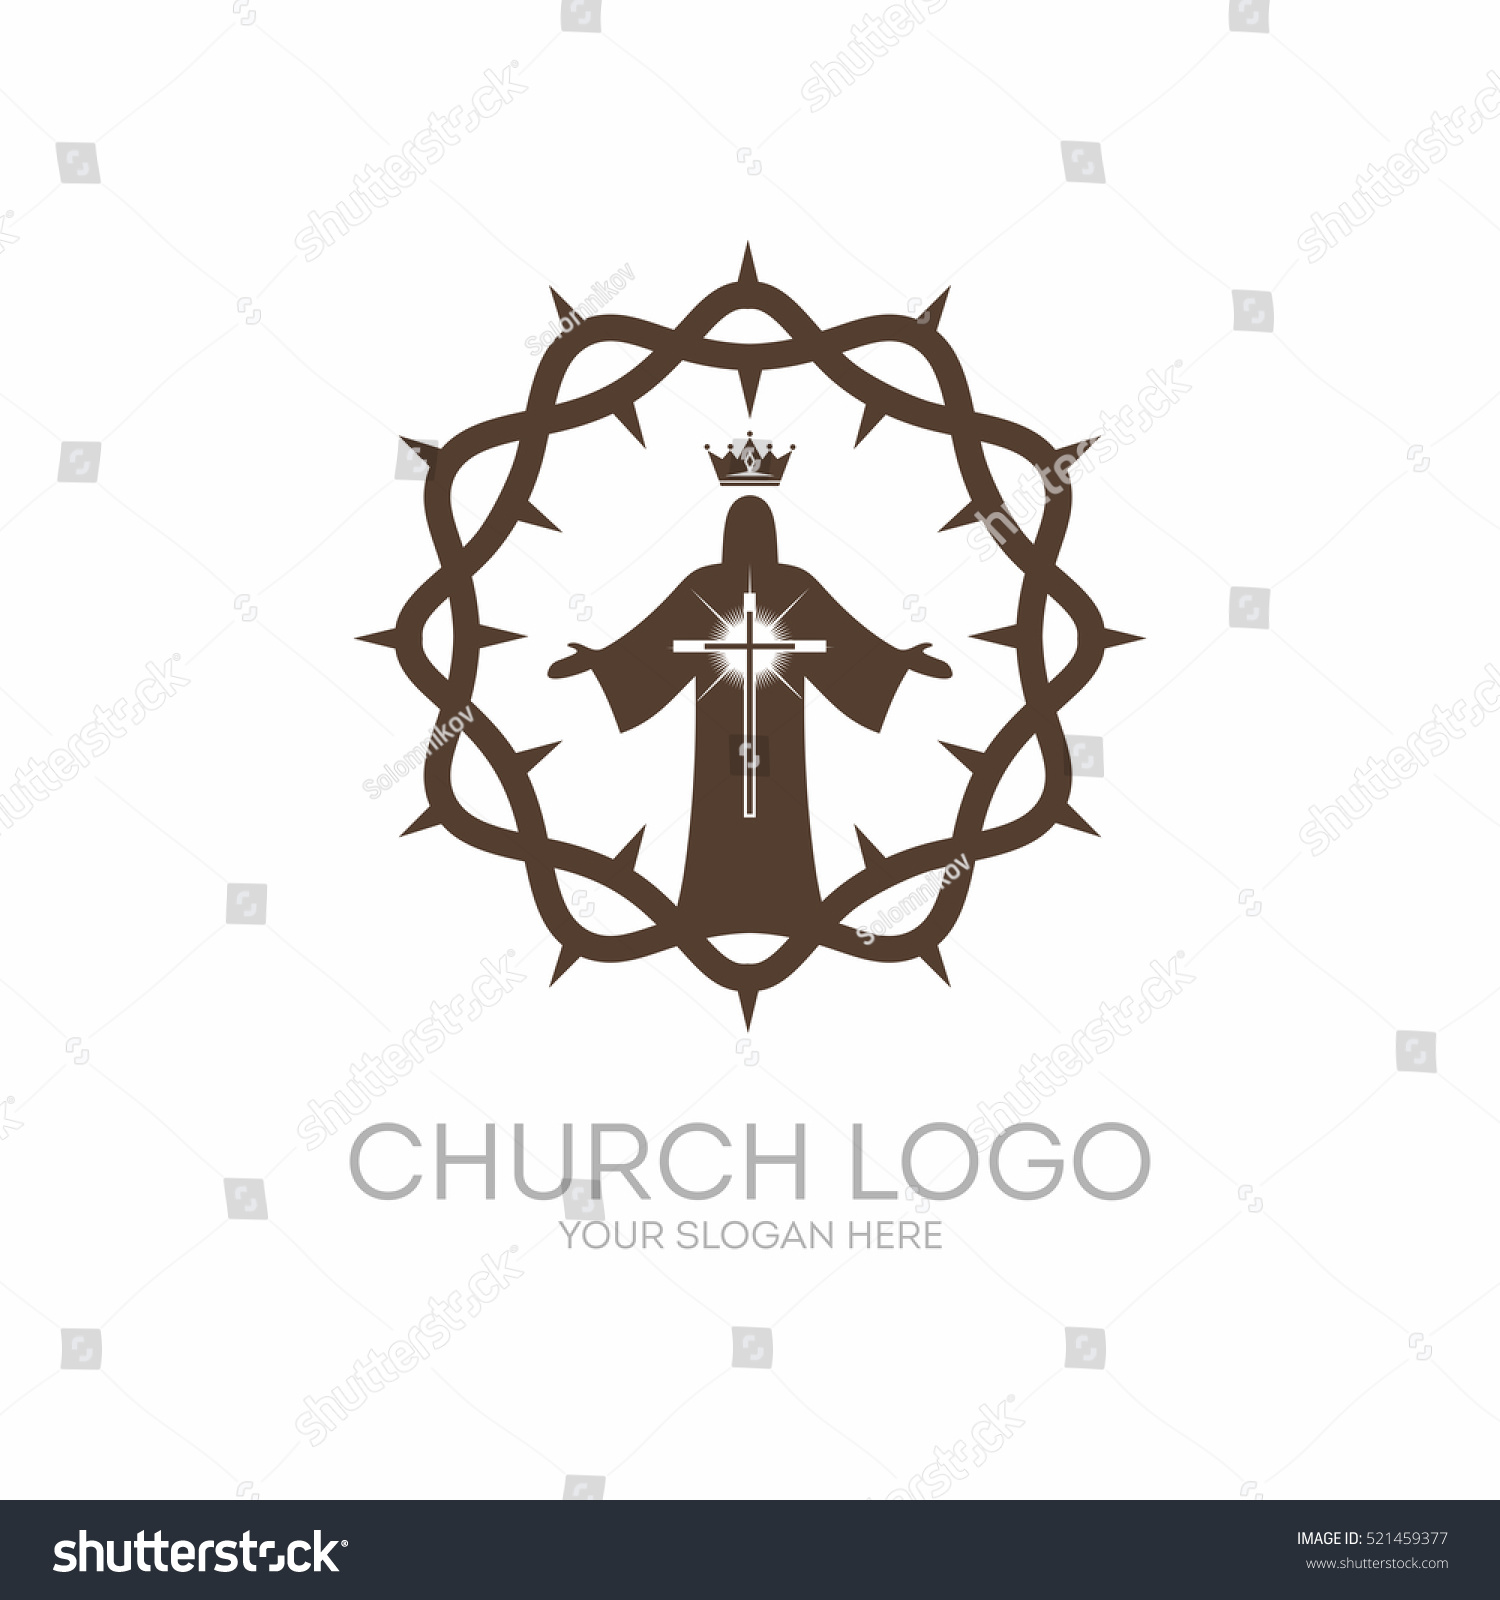 Church logo christian symbols crown thorns stock vector 521459377 christian symbols crown of thorns the savior and king jesus buycottarizona Gallery